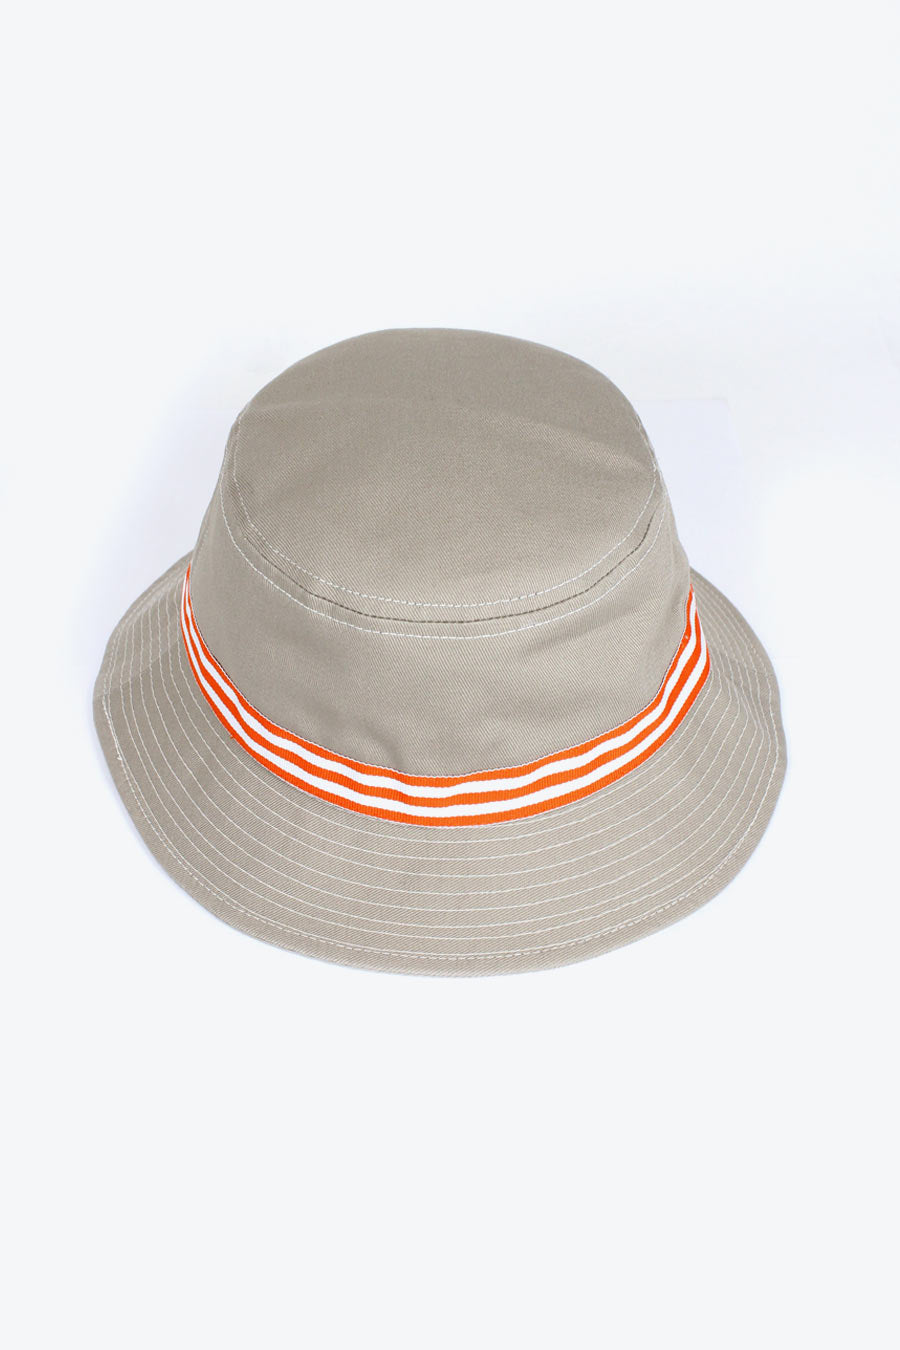 KHAKI ORANGE BANDED BUCKET / KHAKI [50%OFF]